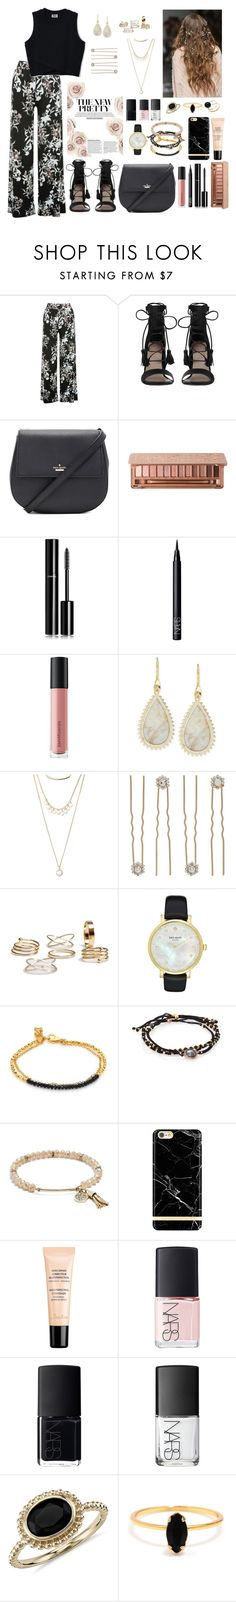 """Untitled #308"" by katymccord77 ❤ liked on Polyvore featuring M&Co, Zimmermann, Kate Spade, Urban Decay, Chanel, NARS Cosmetics, Bare Escentuals, Eddie Borgo, Forever 21 and Accessorize"